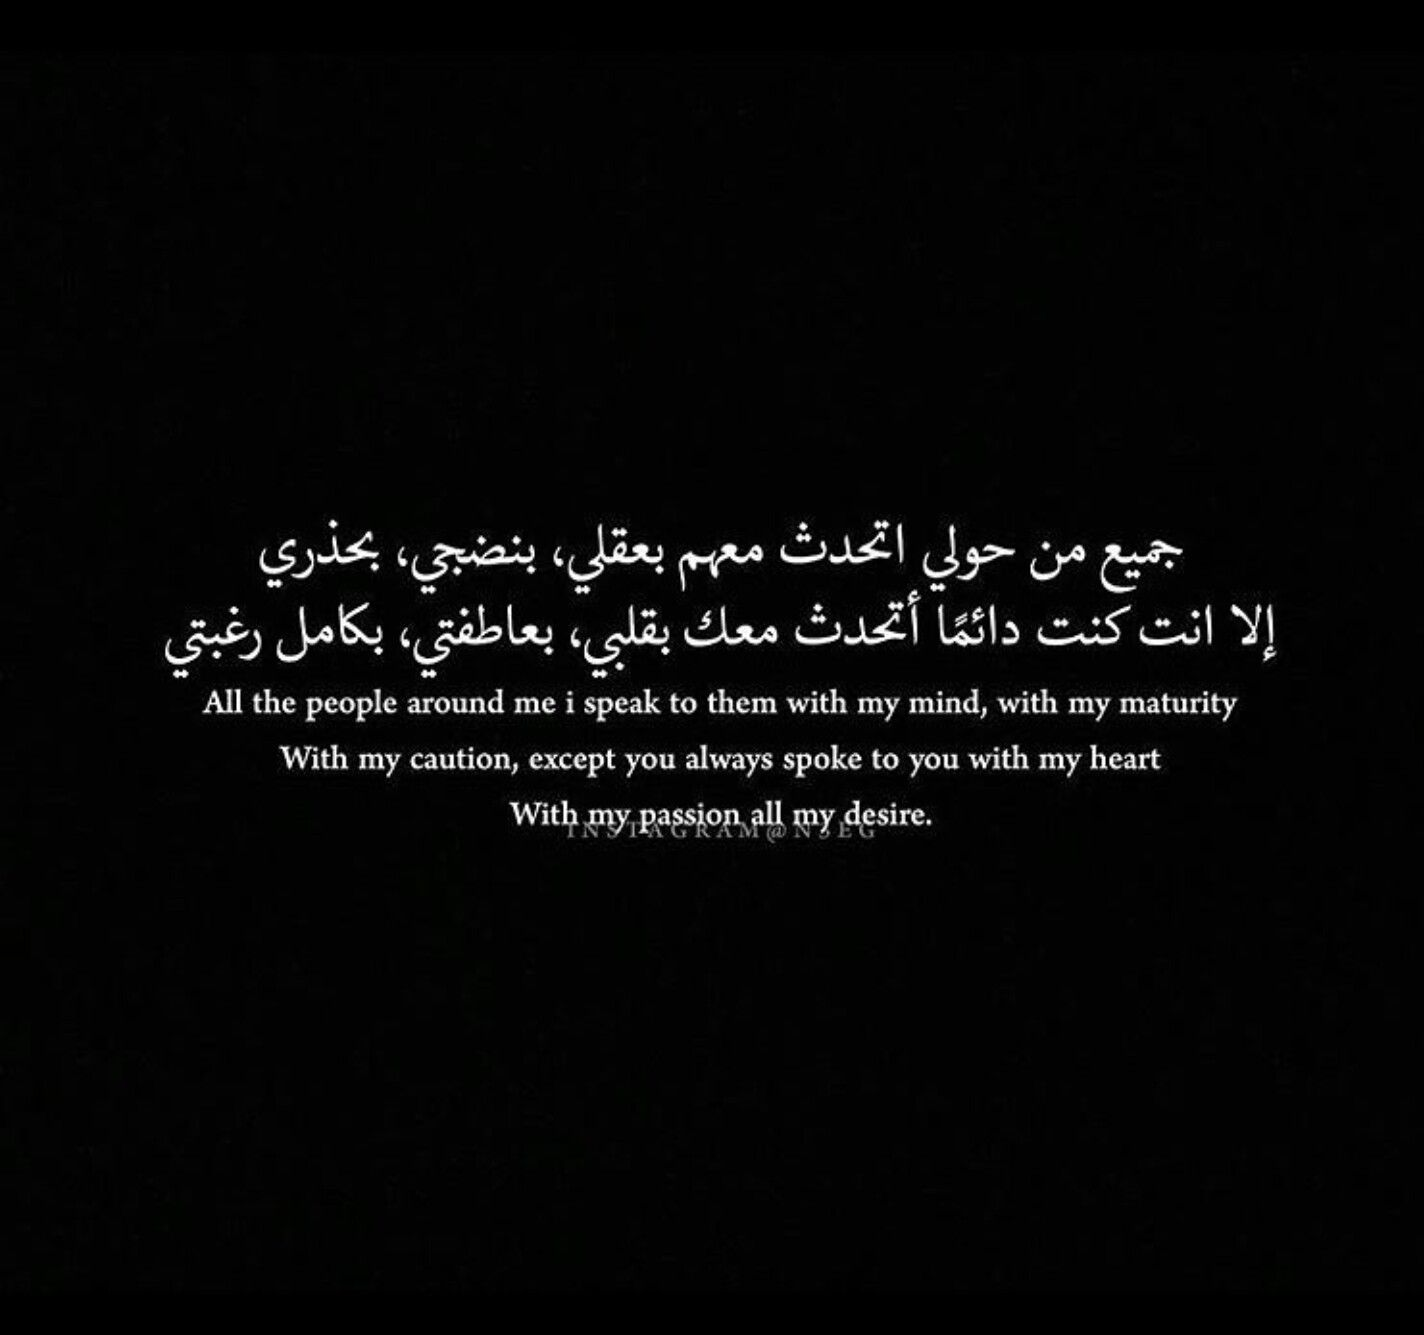 Ah Wallah Arabic Quotes With Translation Wisdom Quotes Life Arabic Quotes